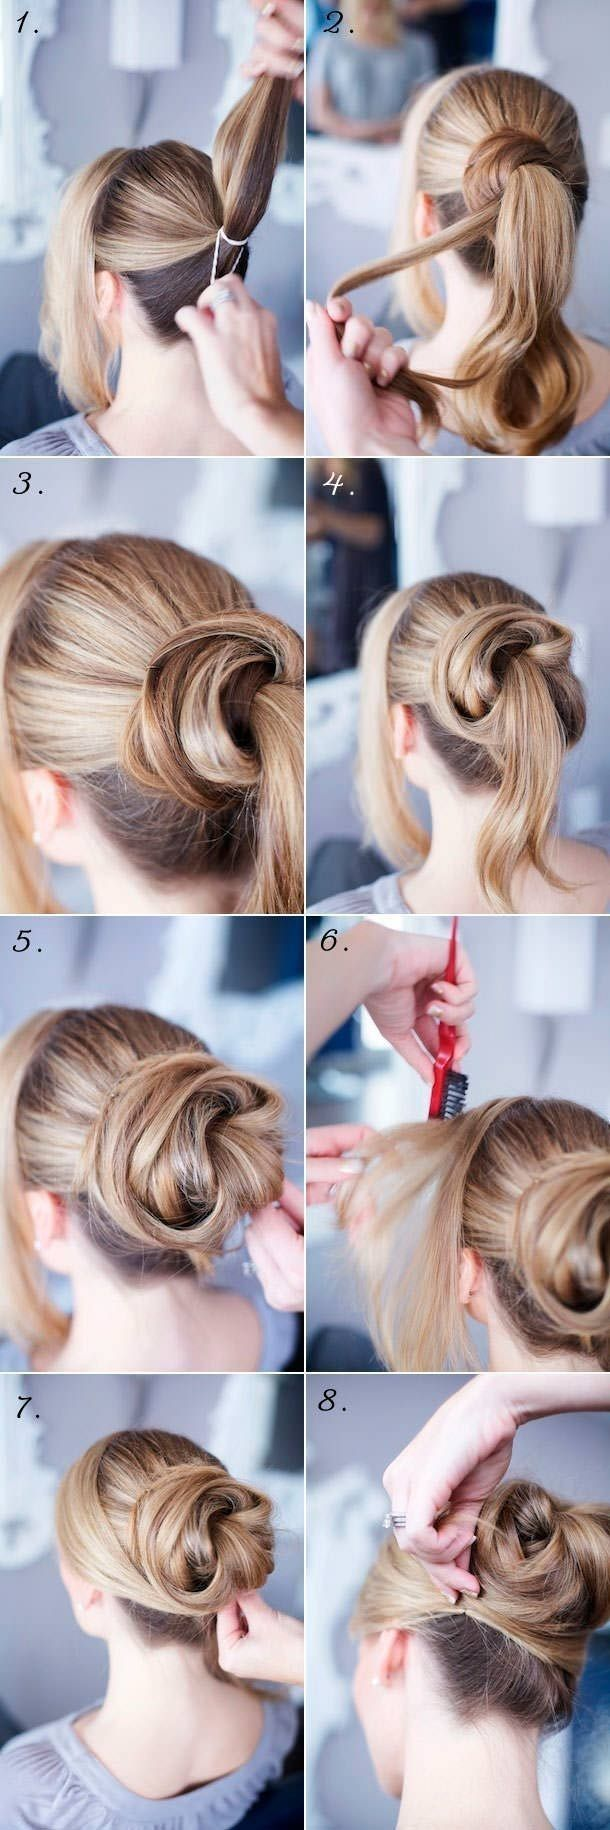 hair tutorials knot updo hairstyles pinup